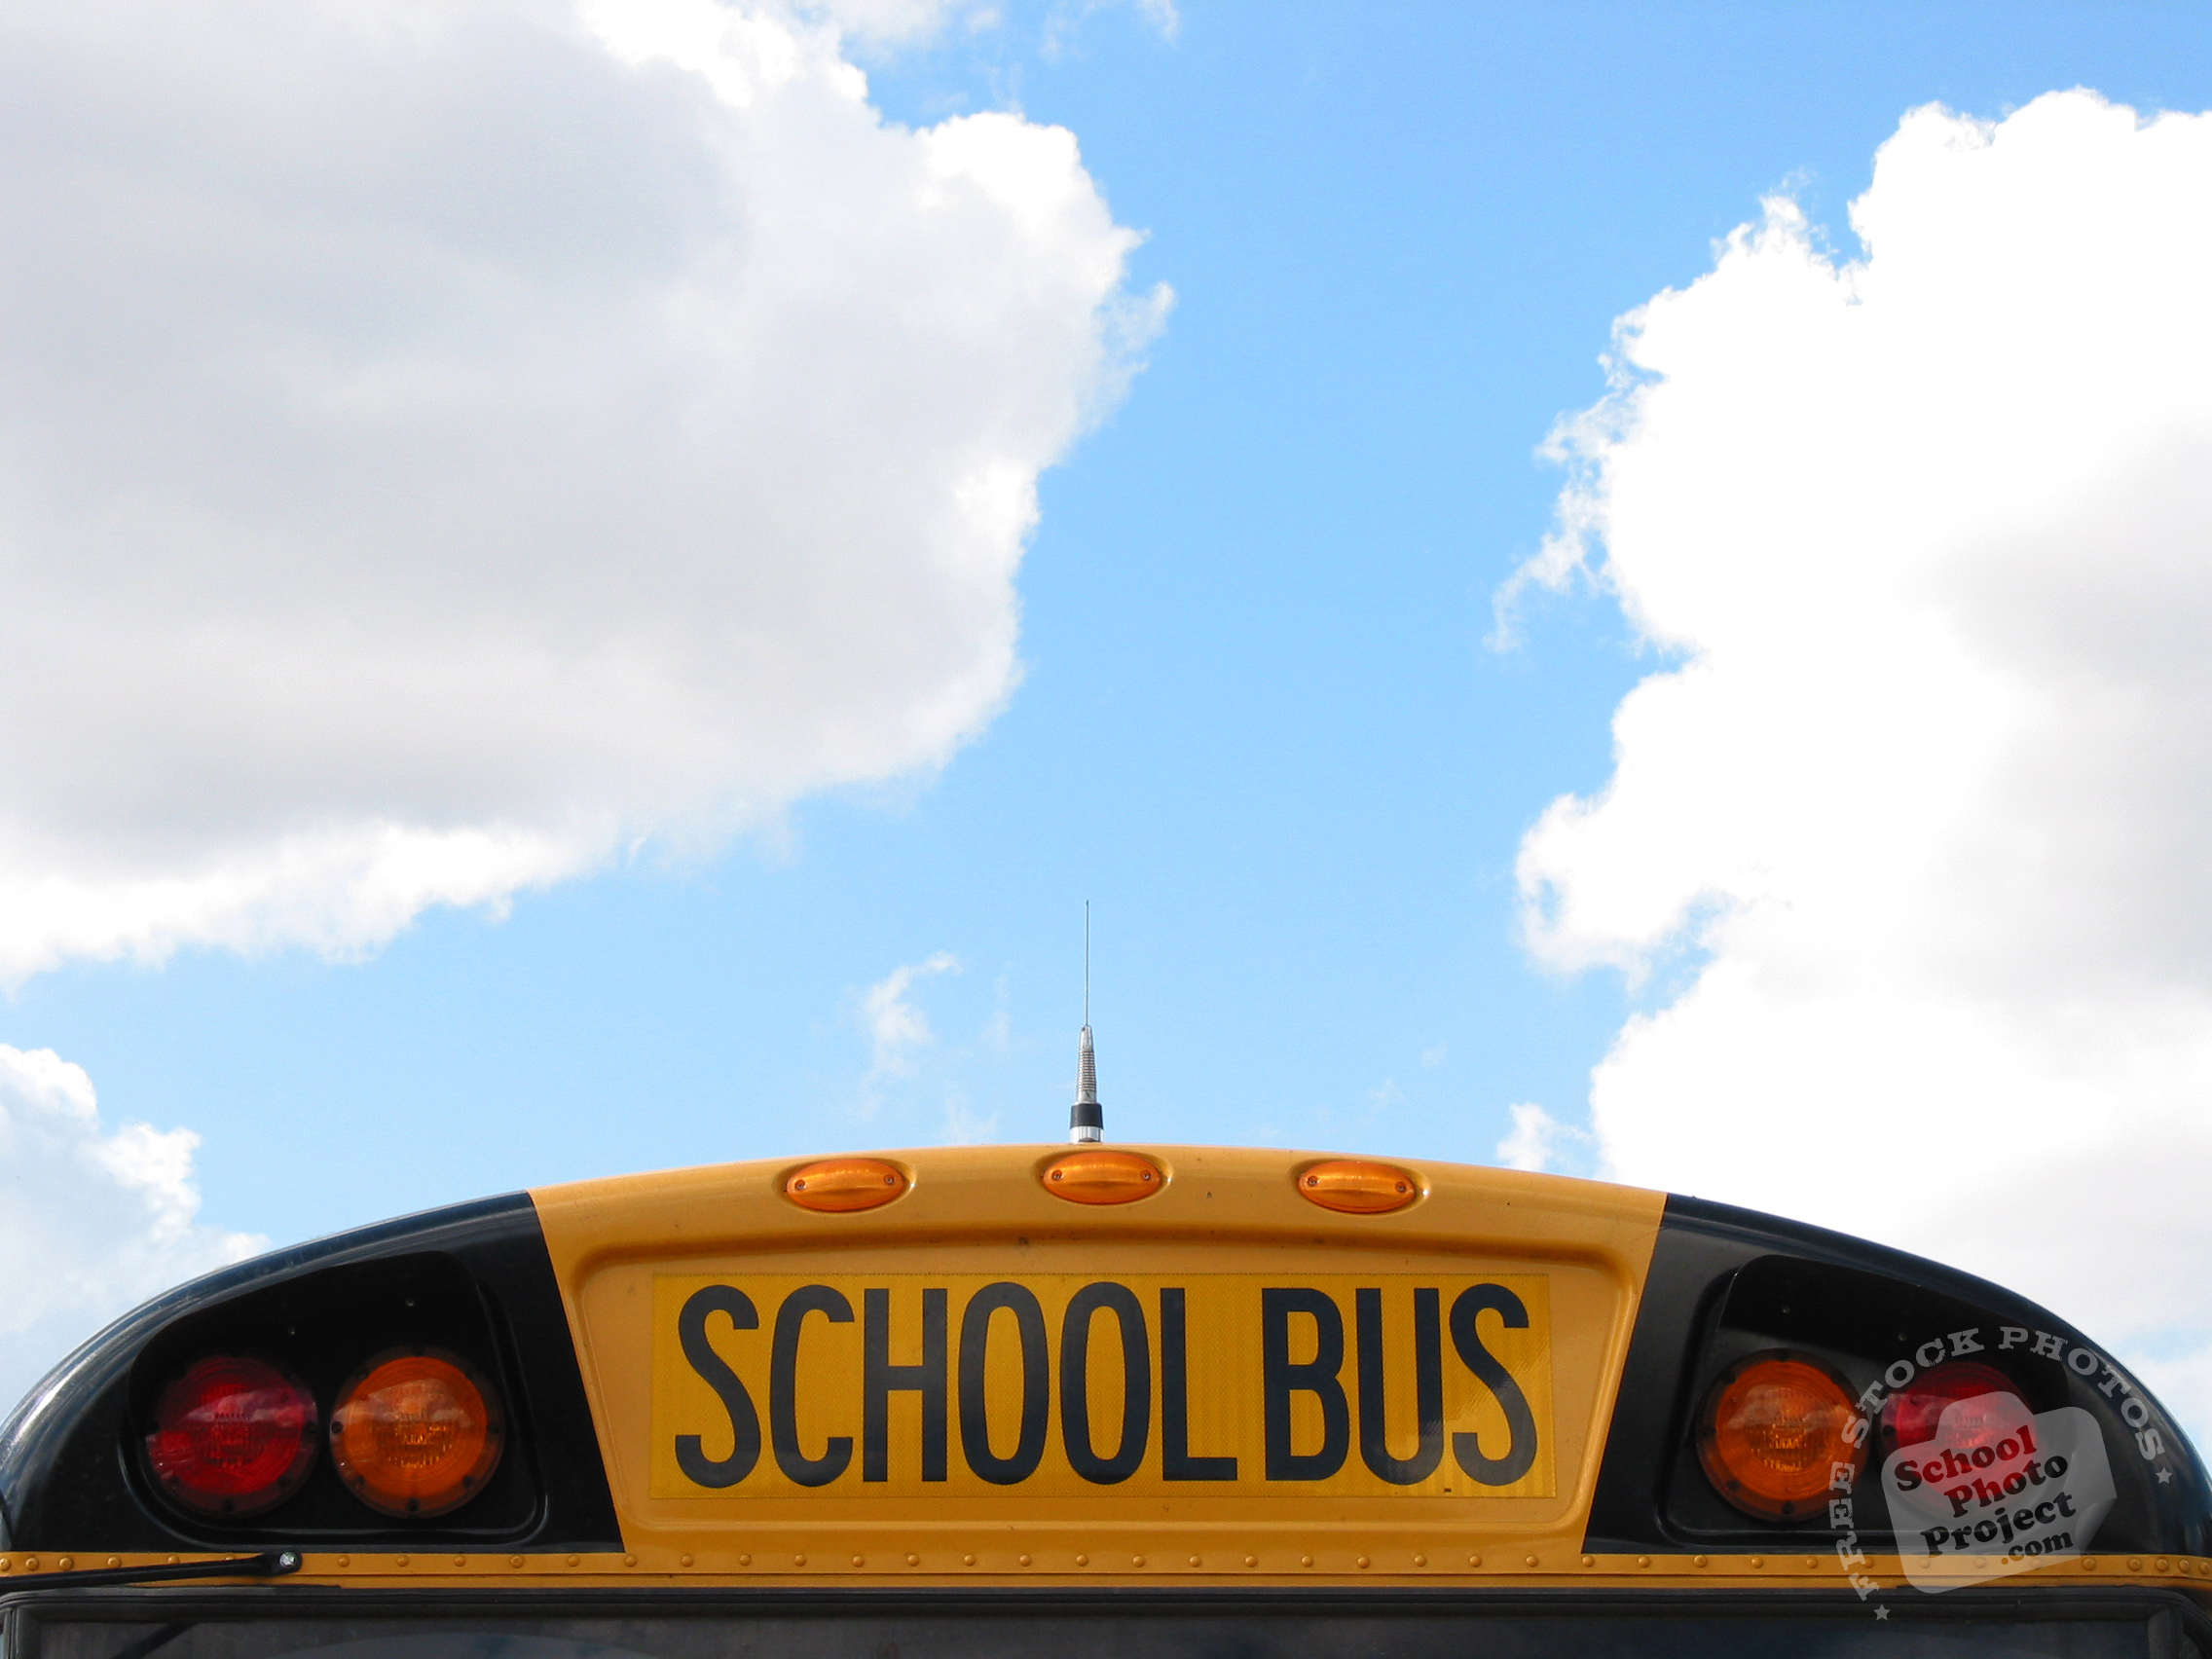 Free Photography Stock School Bus Free Stock Photo Image Picture Yellow School Bus